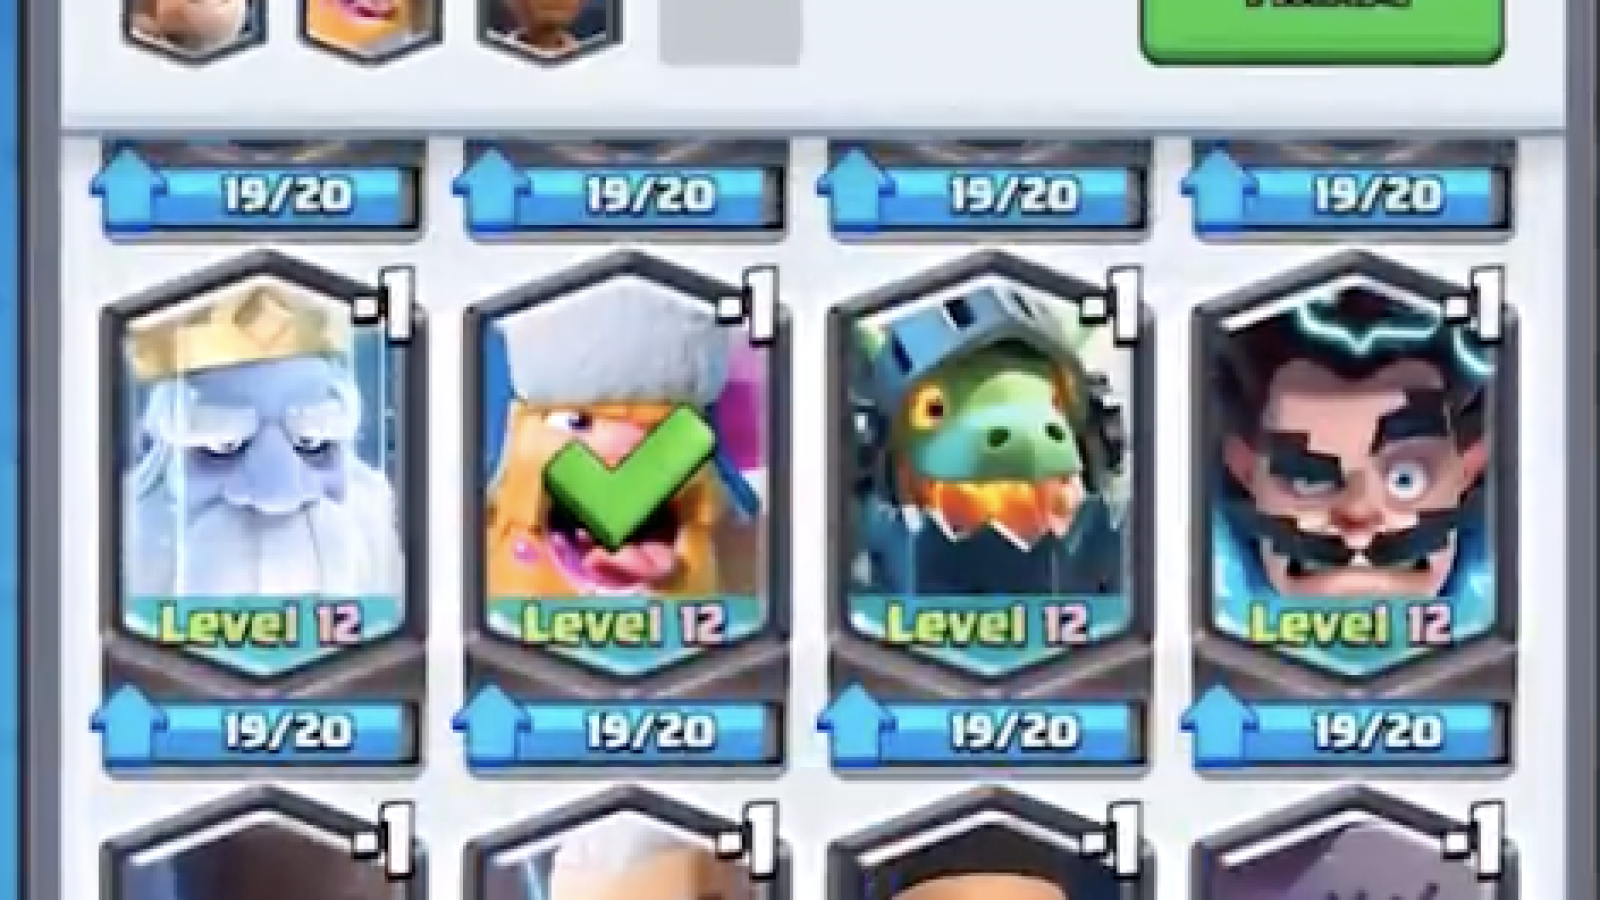 Clash Royale' January 2019 Update Brings New Card, Arena